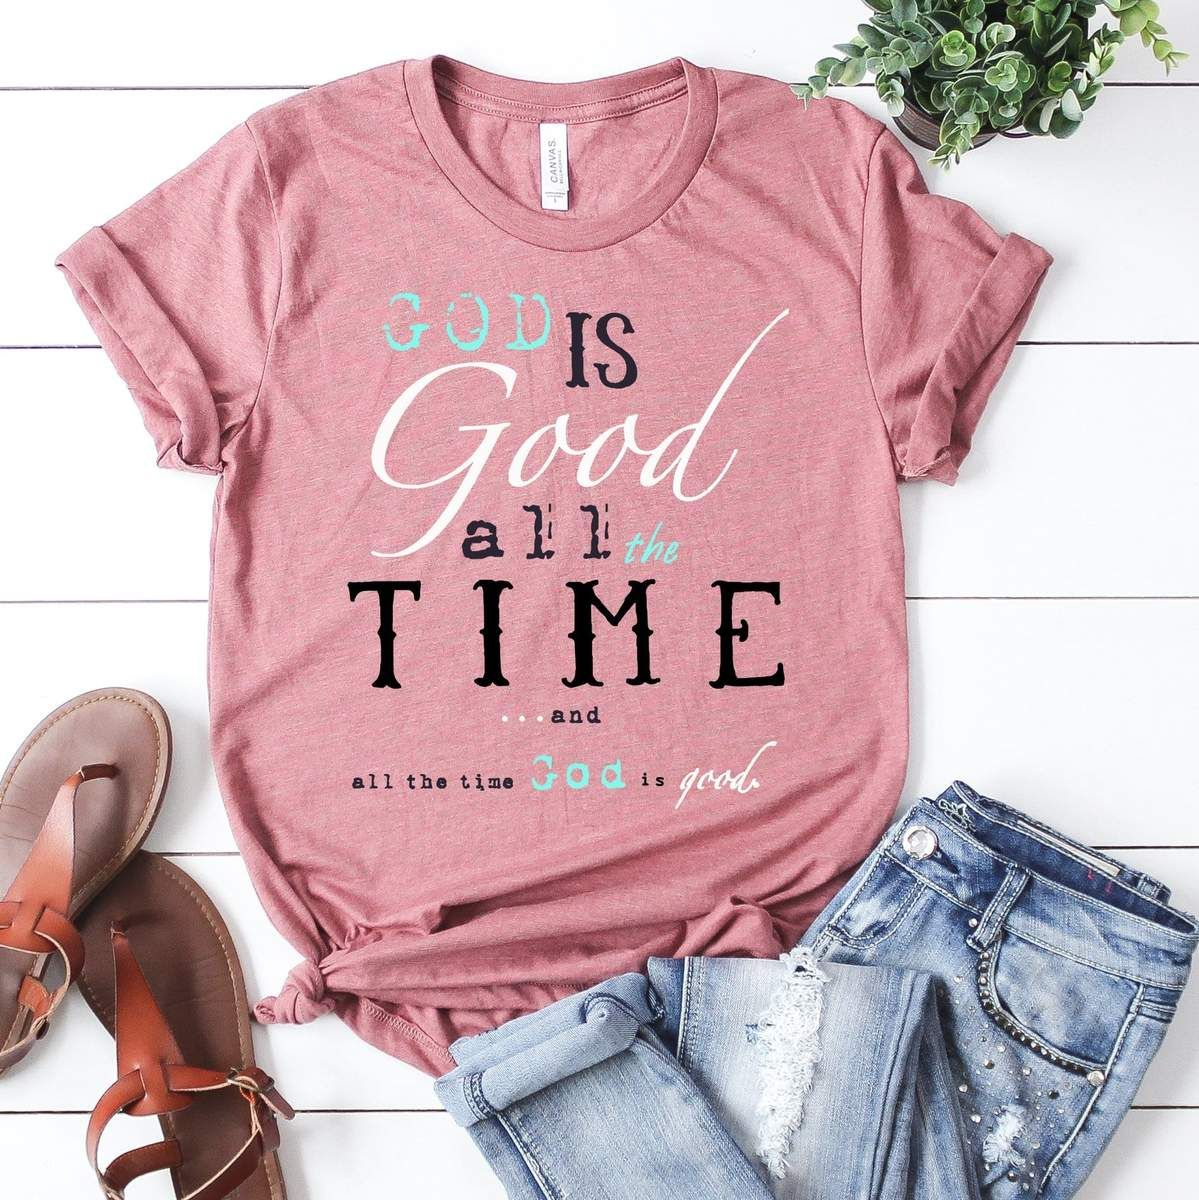 Unisex T-Shirt Womens Tops Short Sleeve Summer Casual Blouse Funny Gift Tee Shirts Sayings God is Good All The Time